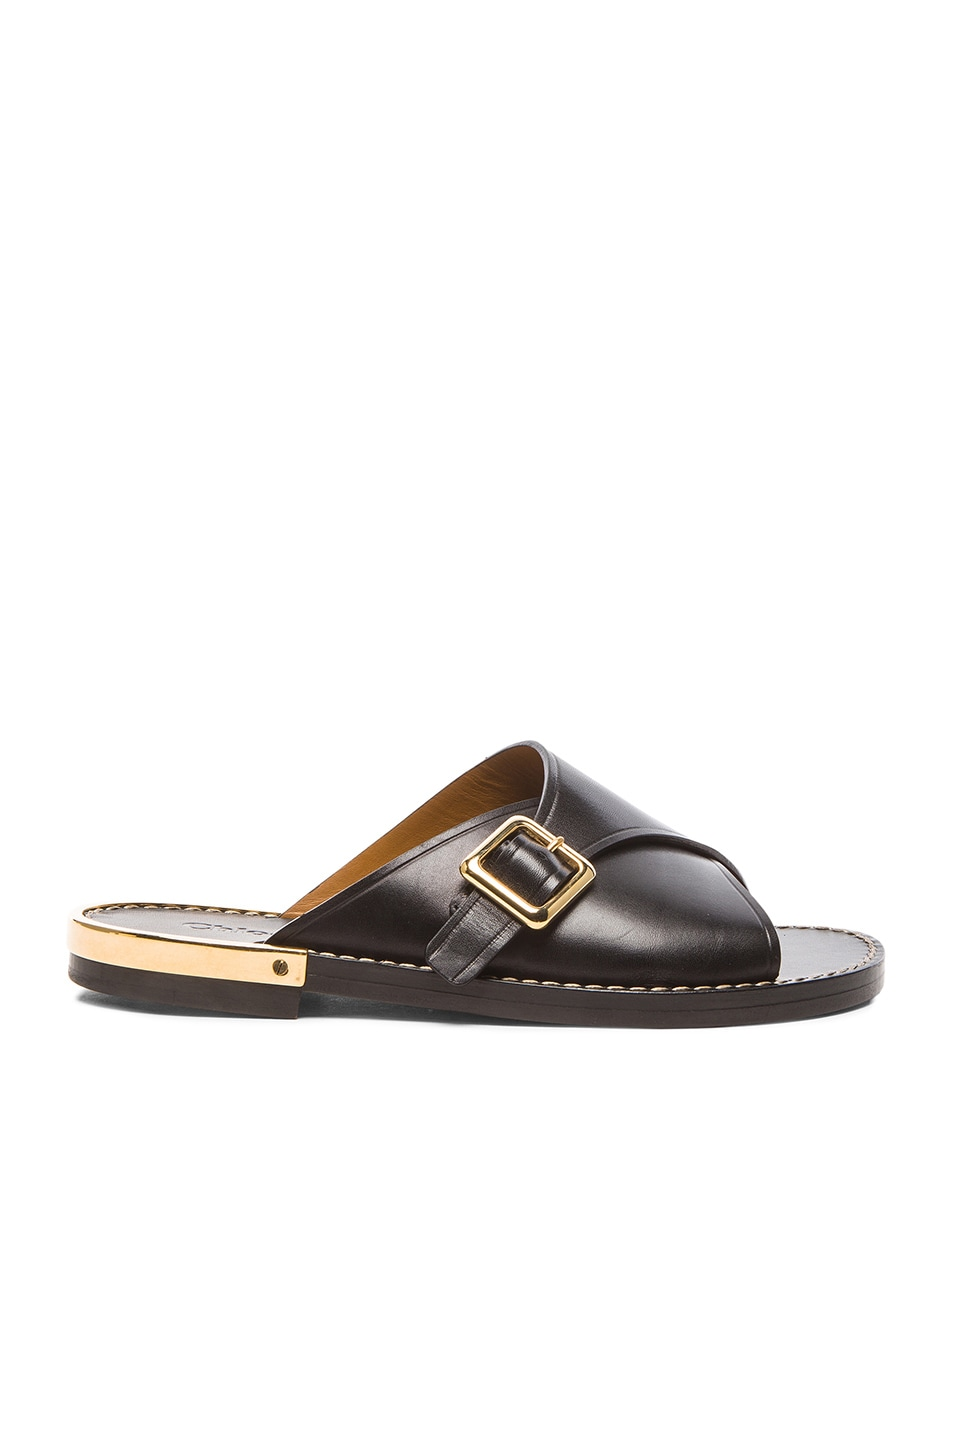 Image 1 of Chloe Leather Buckle Sandals in Black